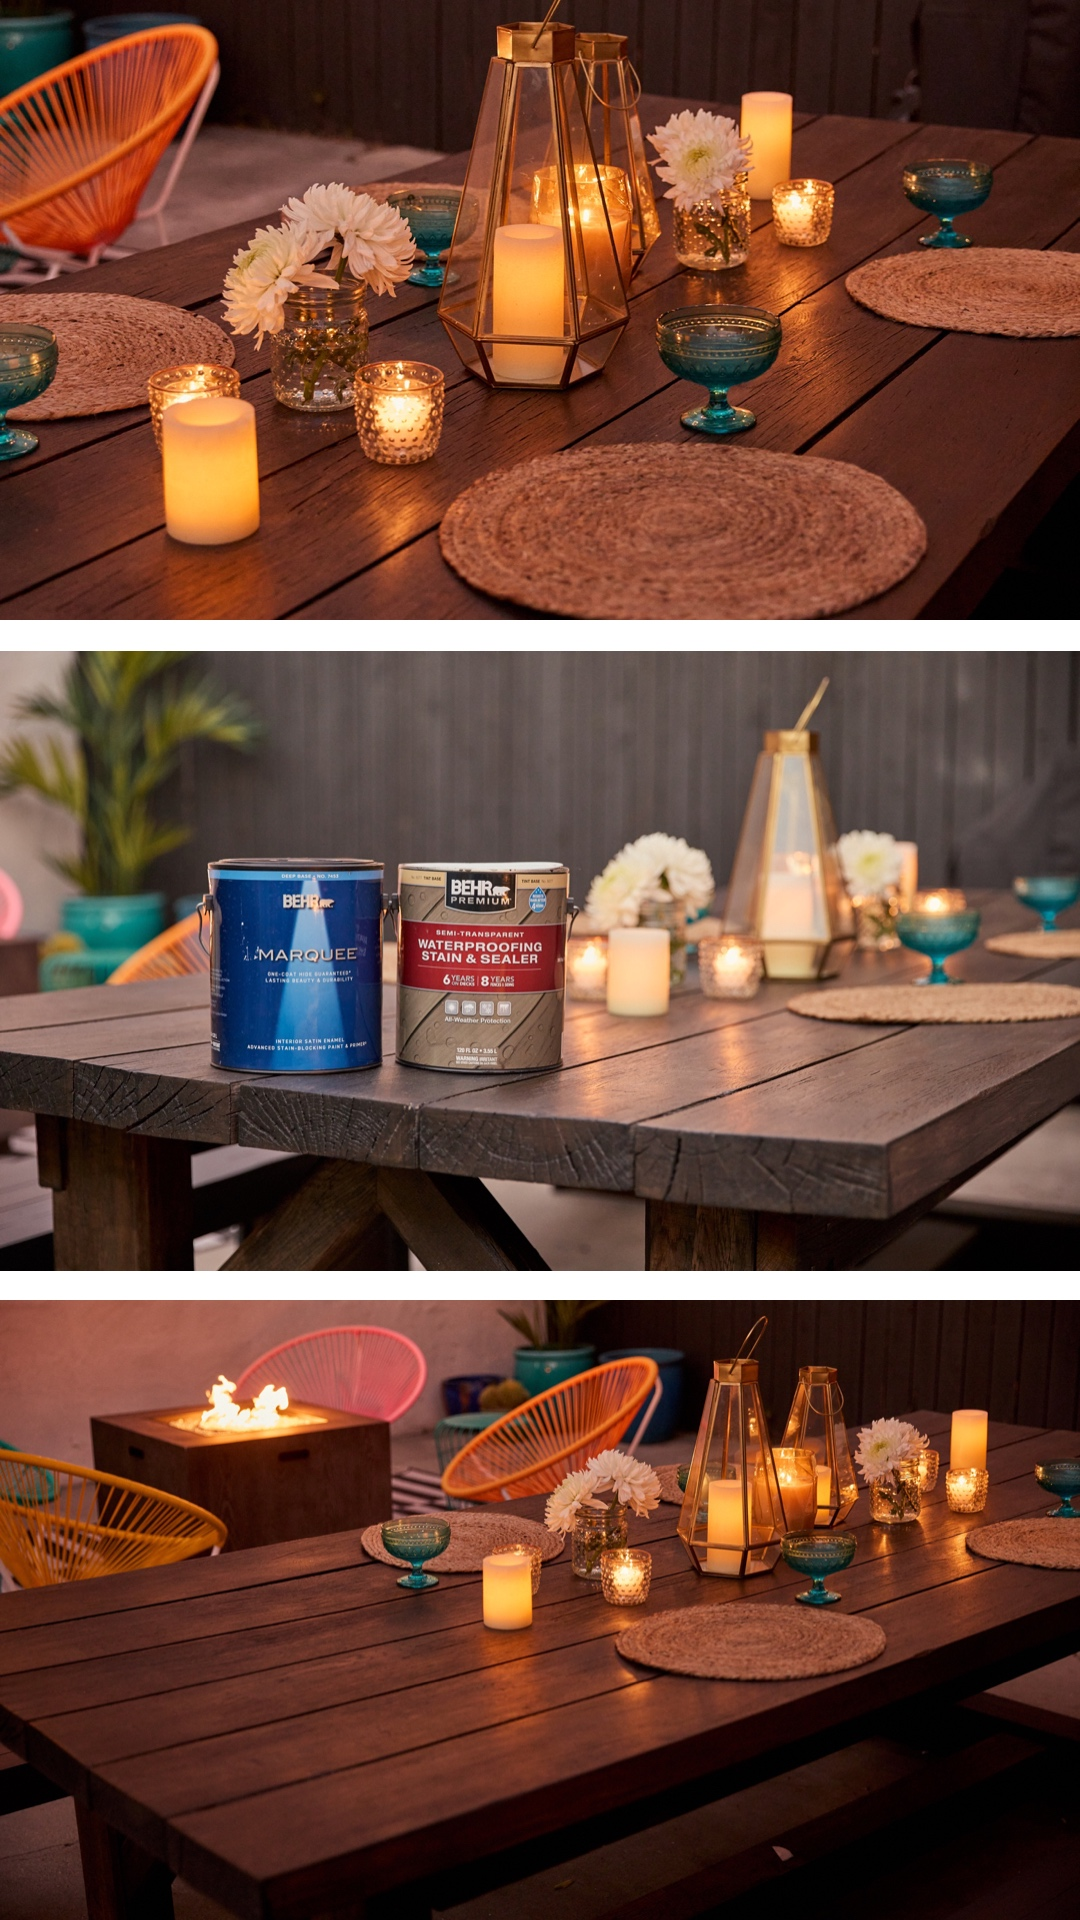 backyard wooden table with lights and other decorations